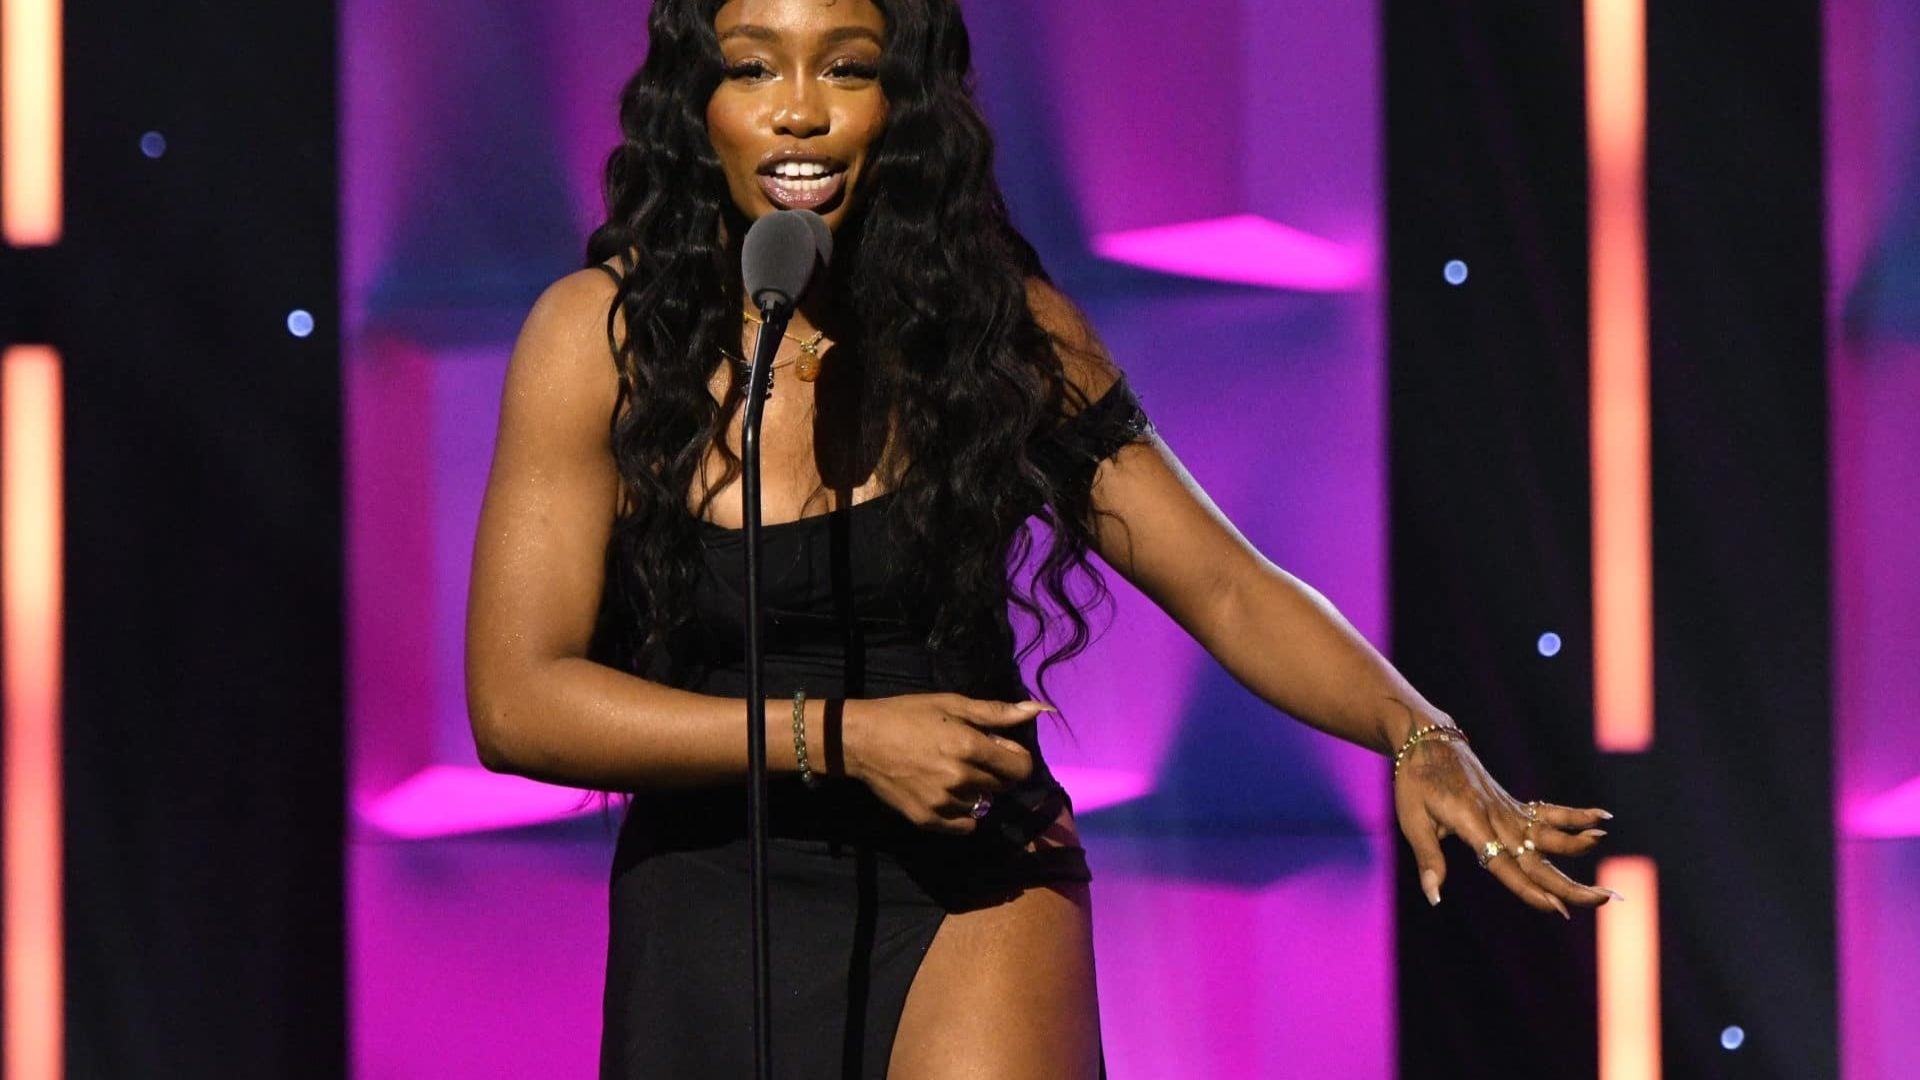 VIDEO: SZA's Hilariously Honest Acceptance Speech At Billboard's Women In Music Event Will Make Your Day